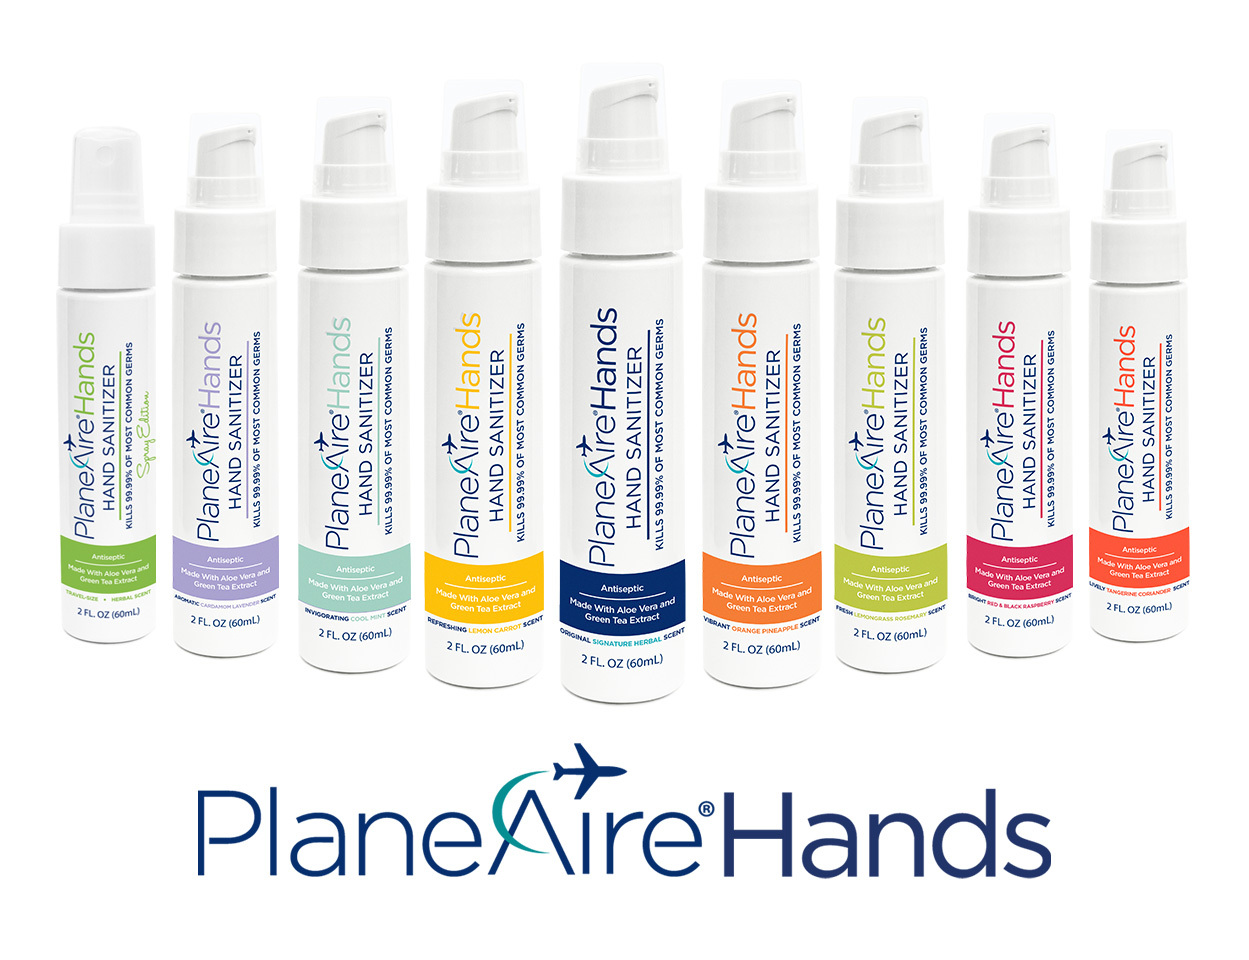 New Vegan Hand Sanitizers by PlaneAire®